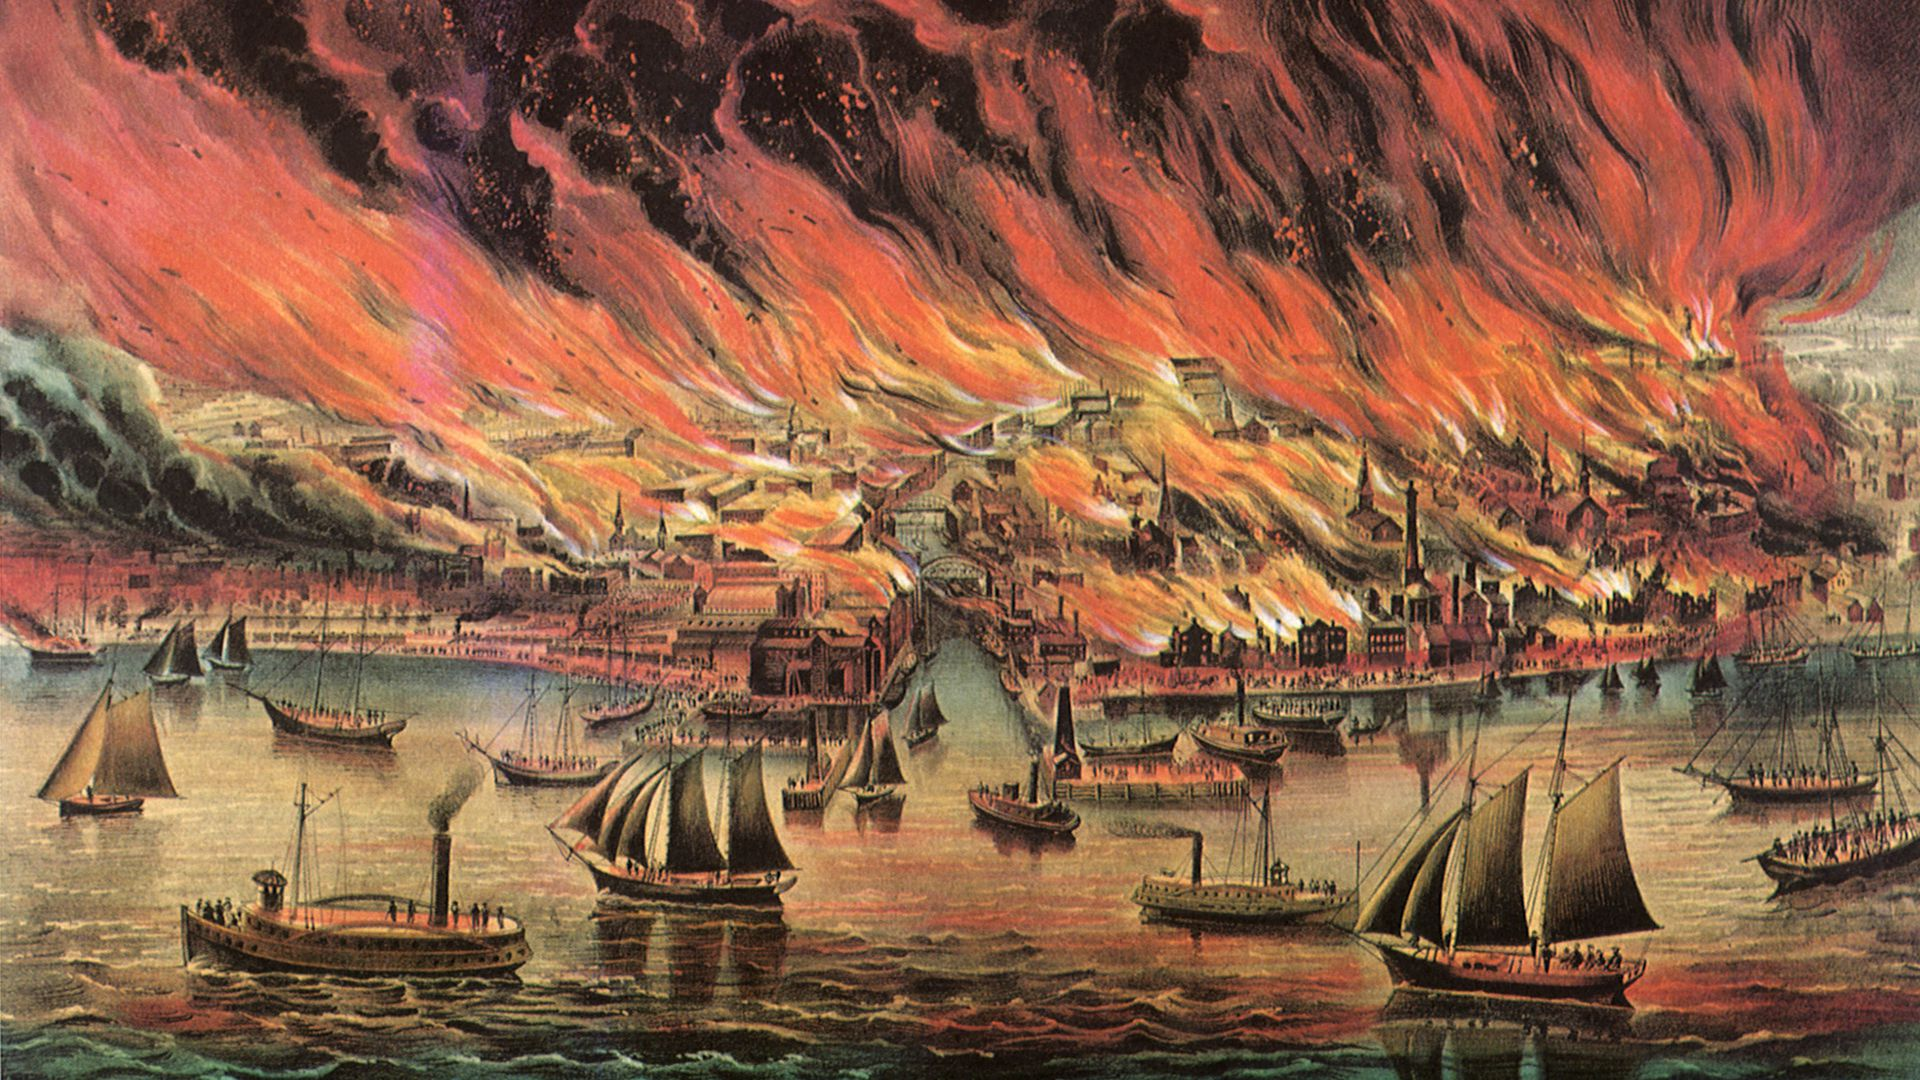 Painting of the city of fire.